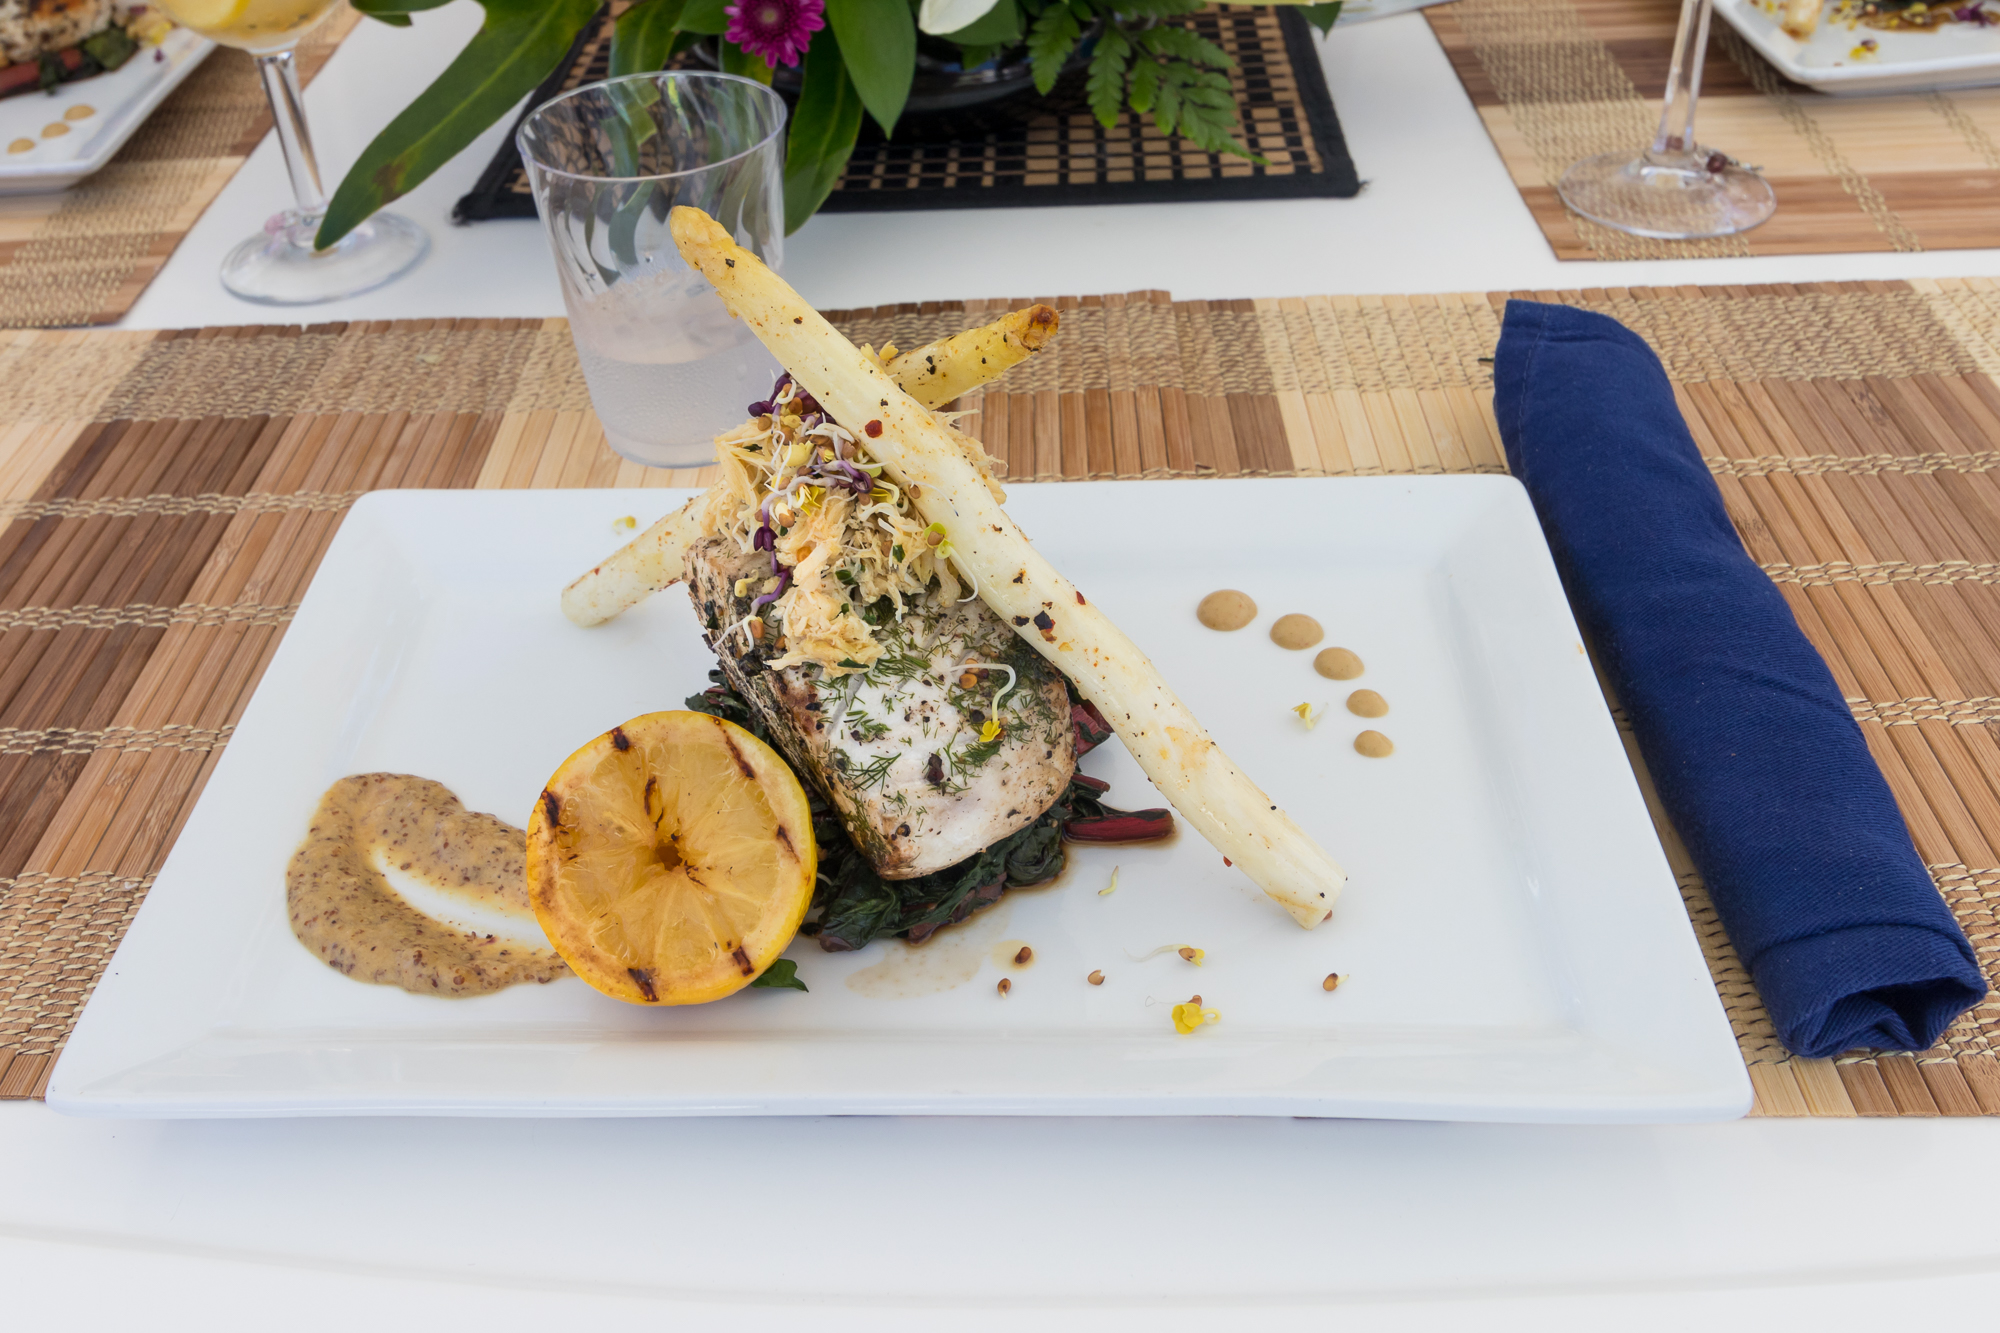 Pan-seared wahoo served on Knot Anchored